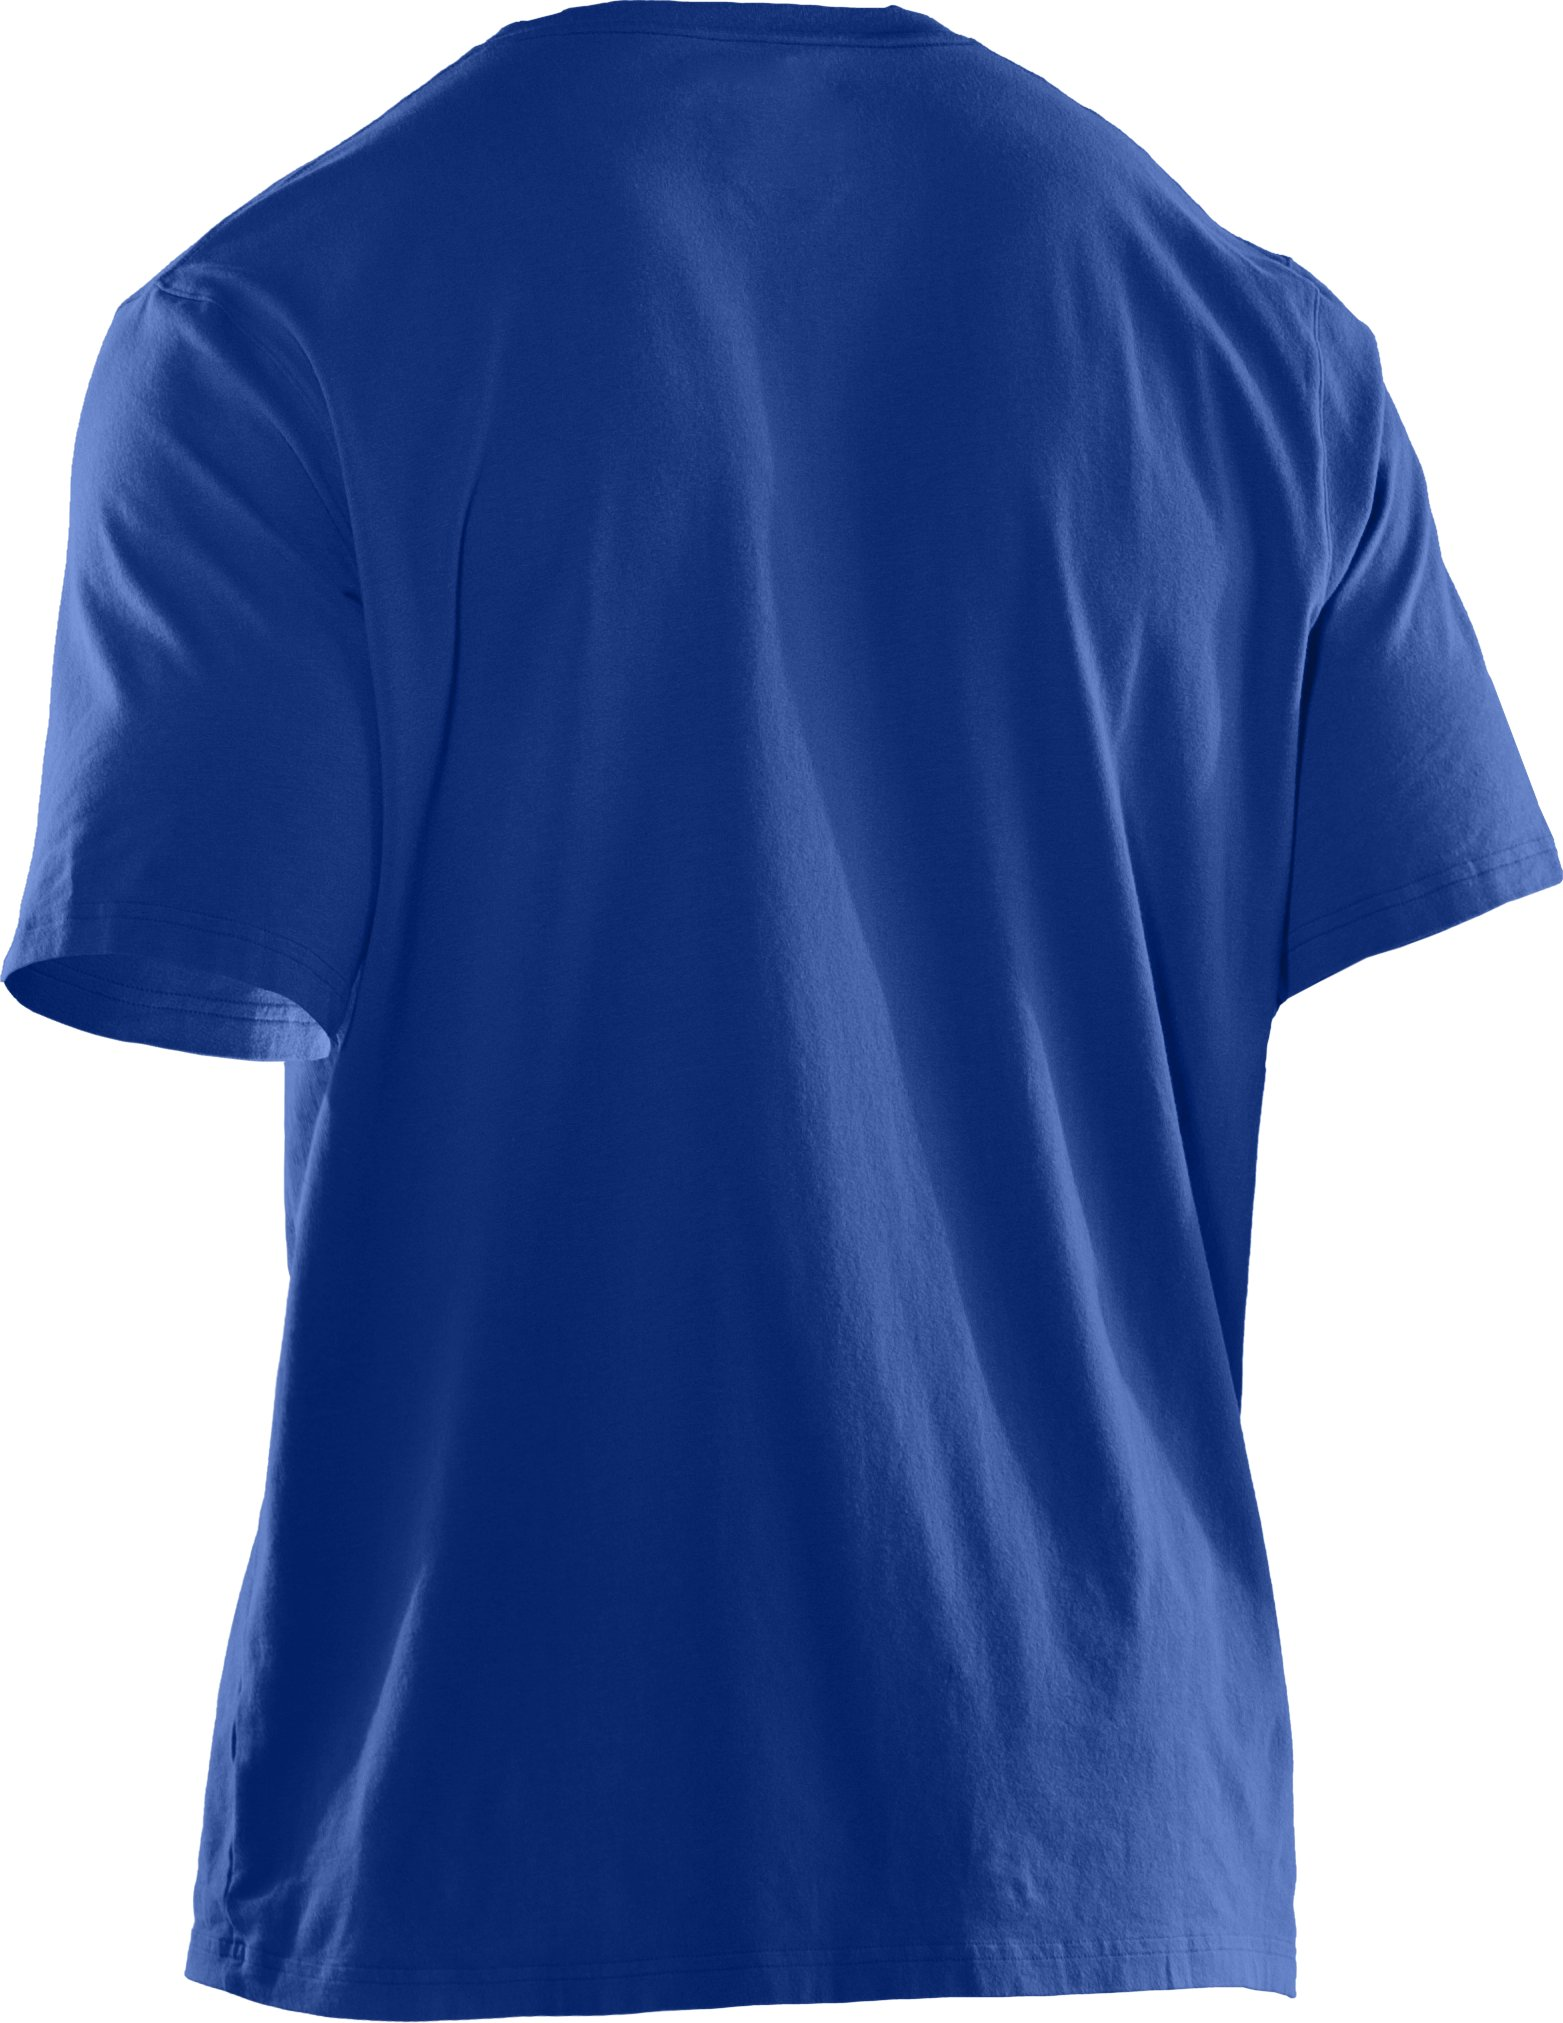 Men's USA Pride T-Shirt, Royal